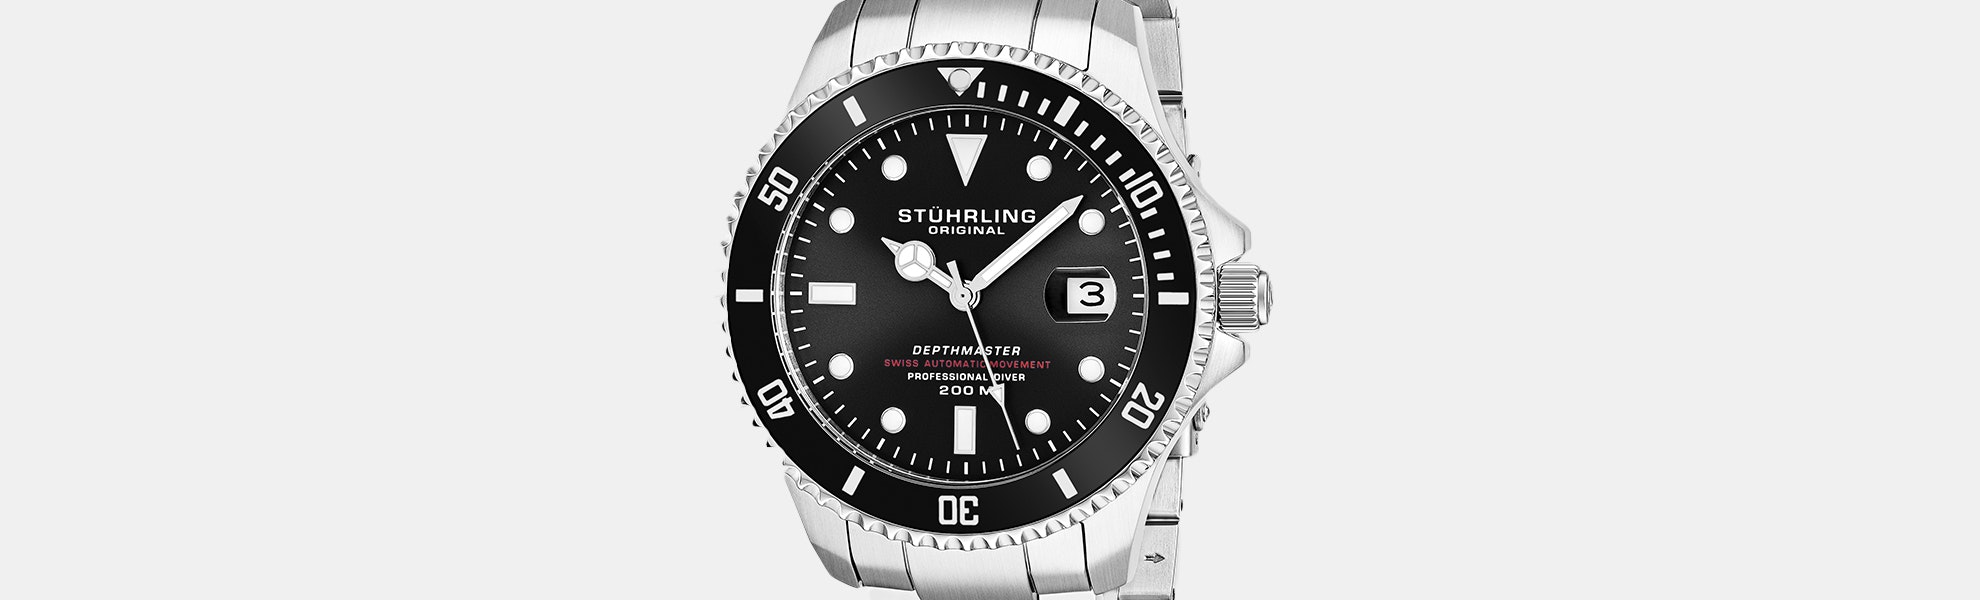 Stuhrling Depthmaster 883 Automatic Watch